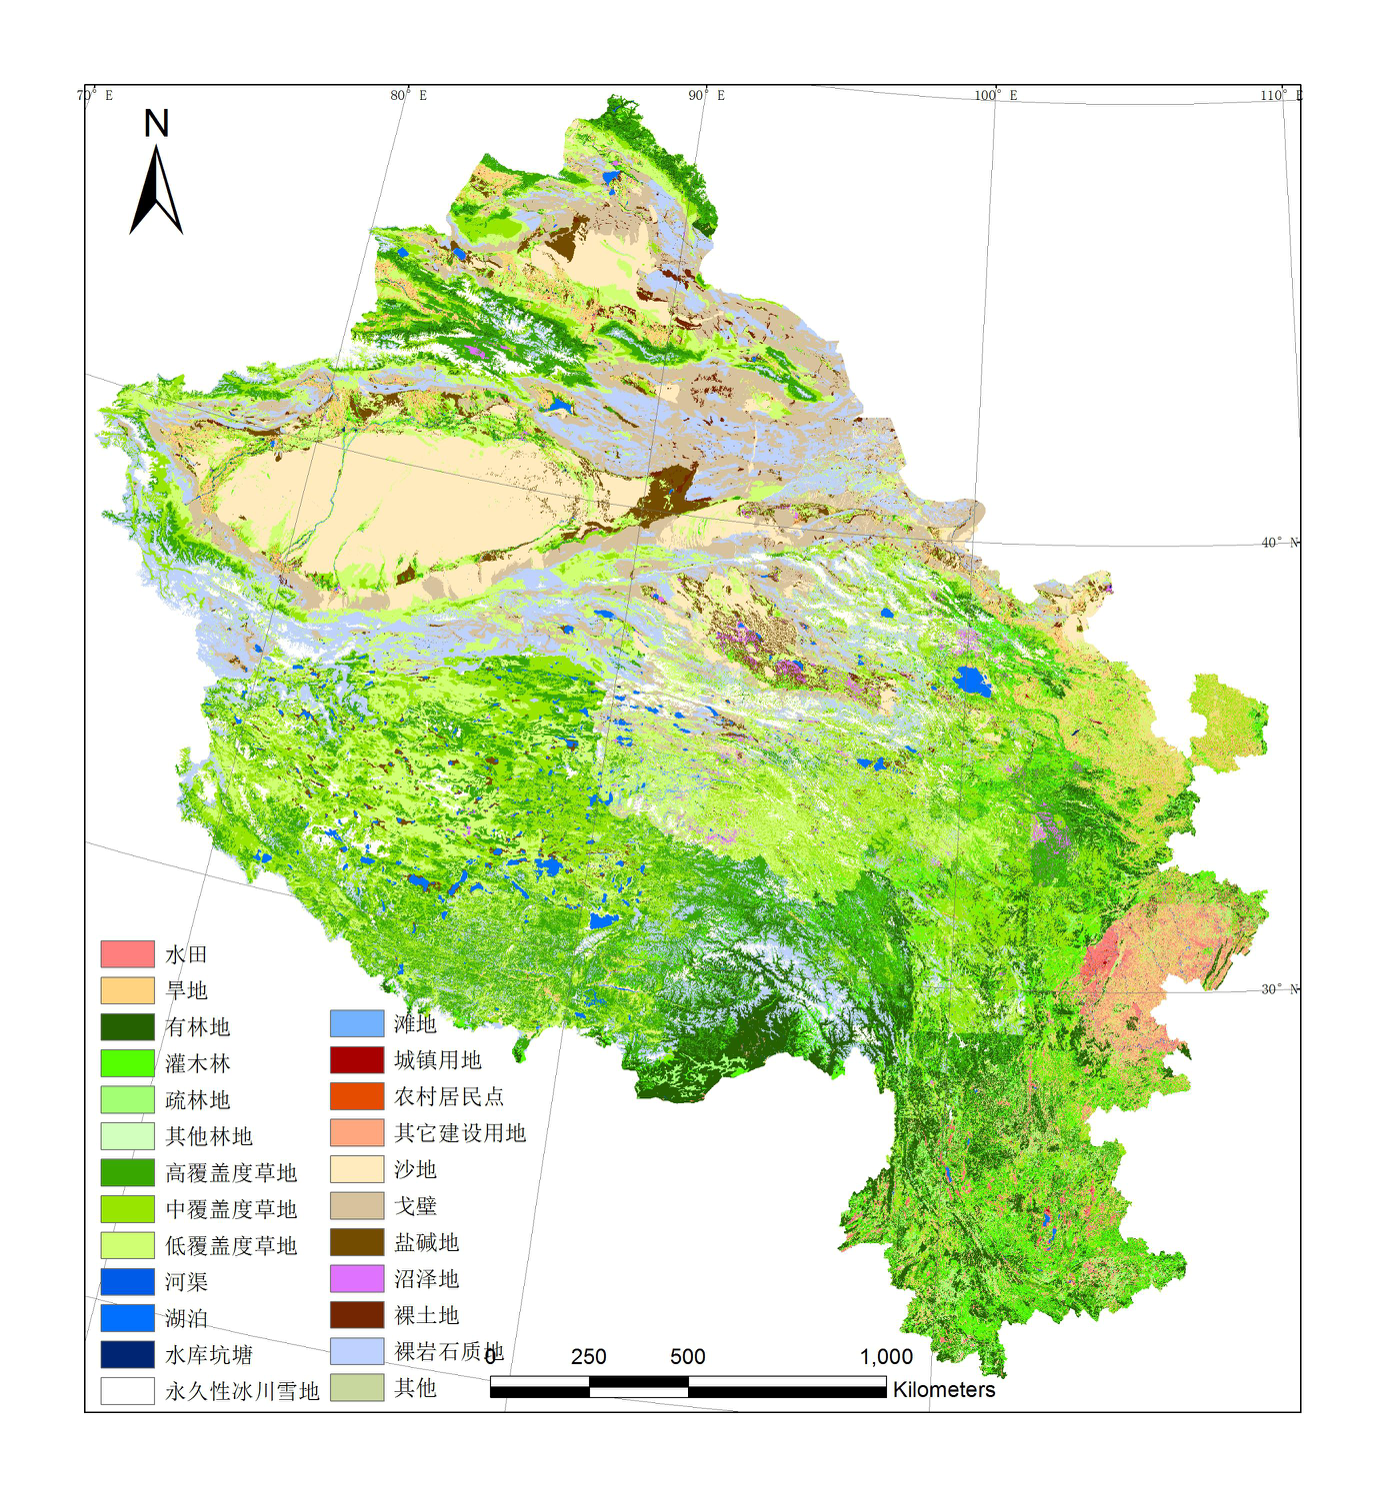 Remote sensing monitoring dataset of land use status in six provinces in western China for many years (1970s, 1980s, 1995, 2000, 2005, 2010, 2015)